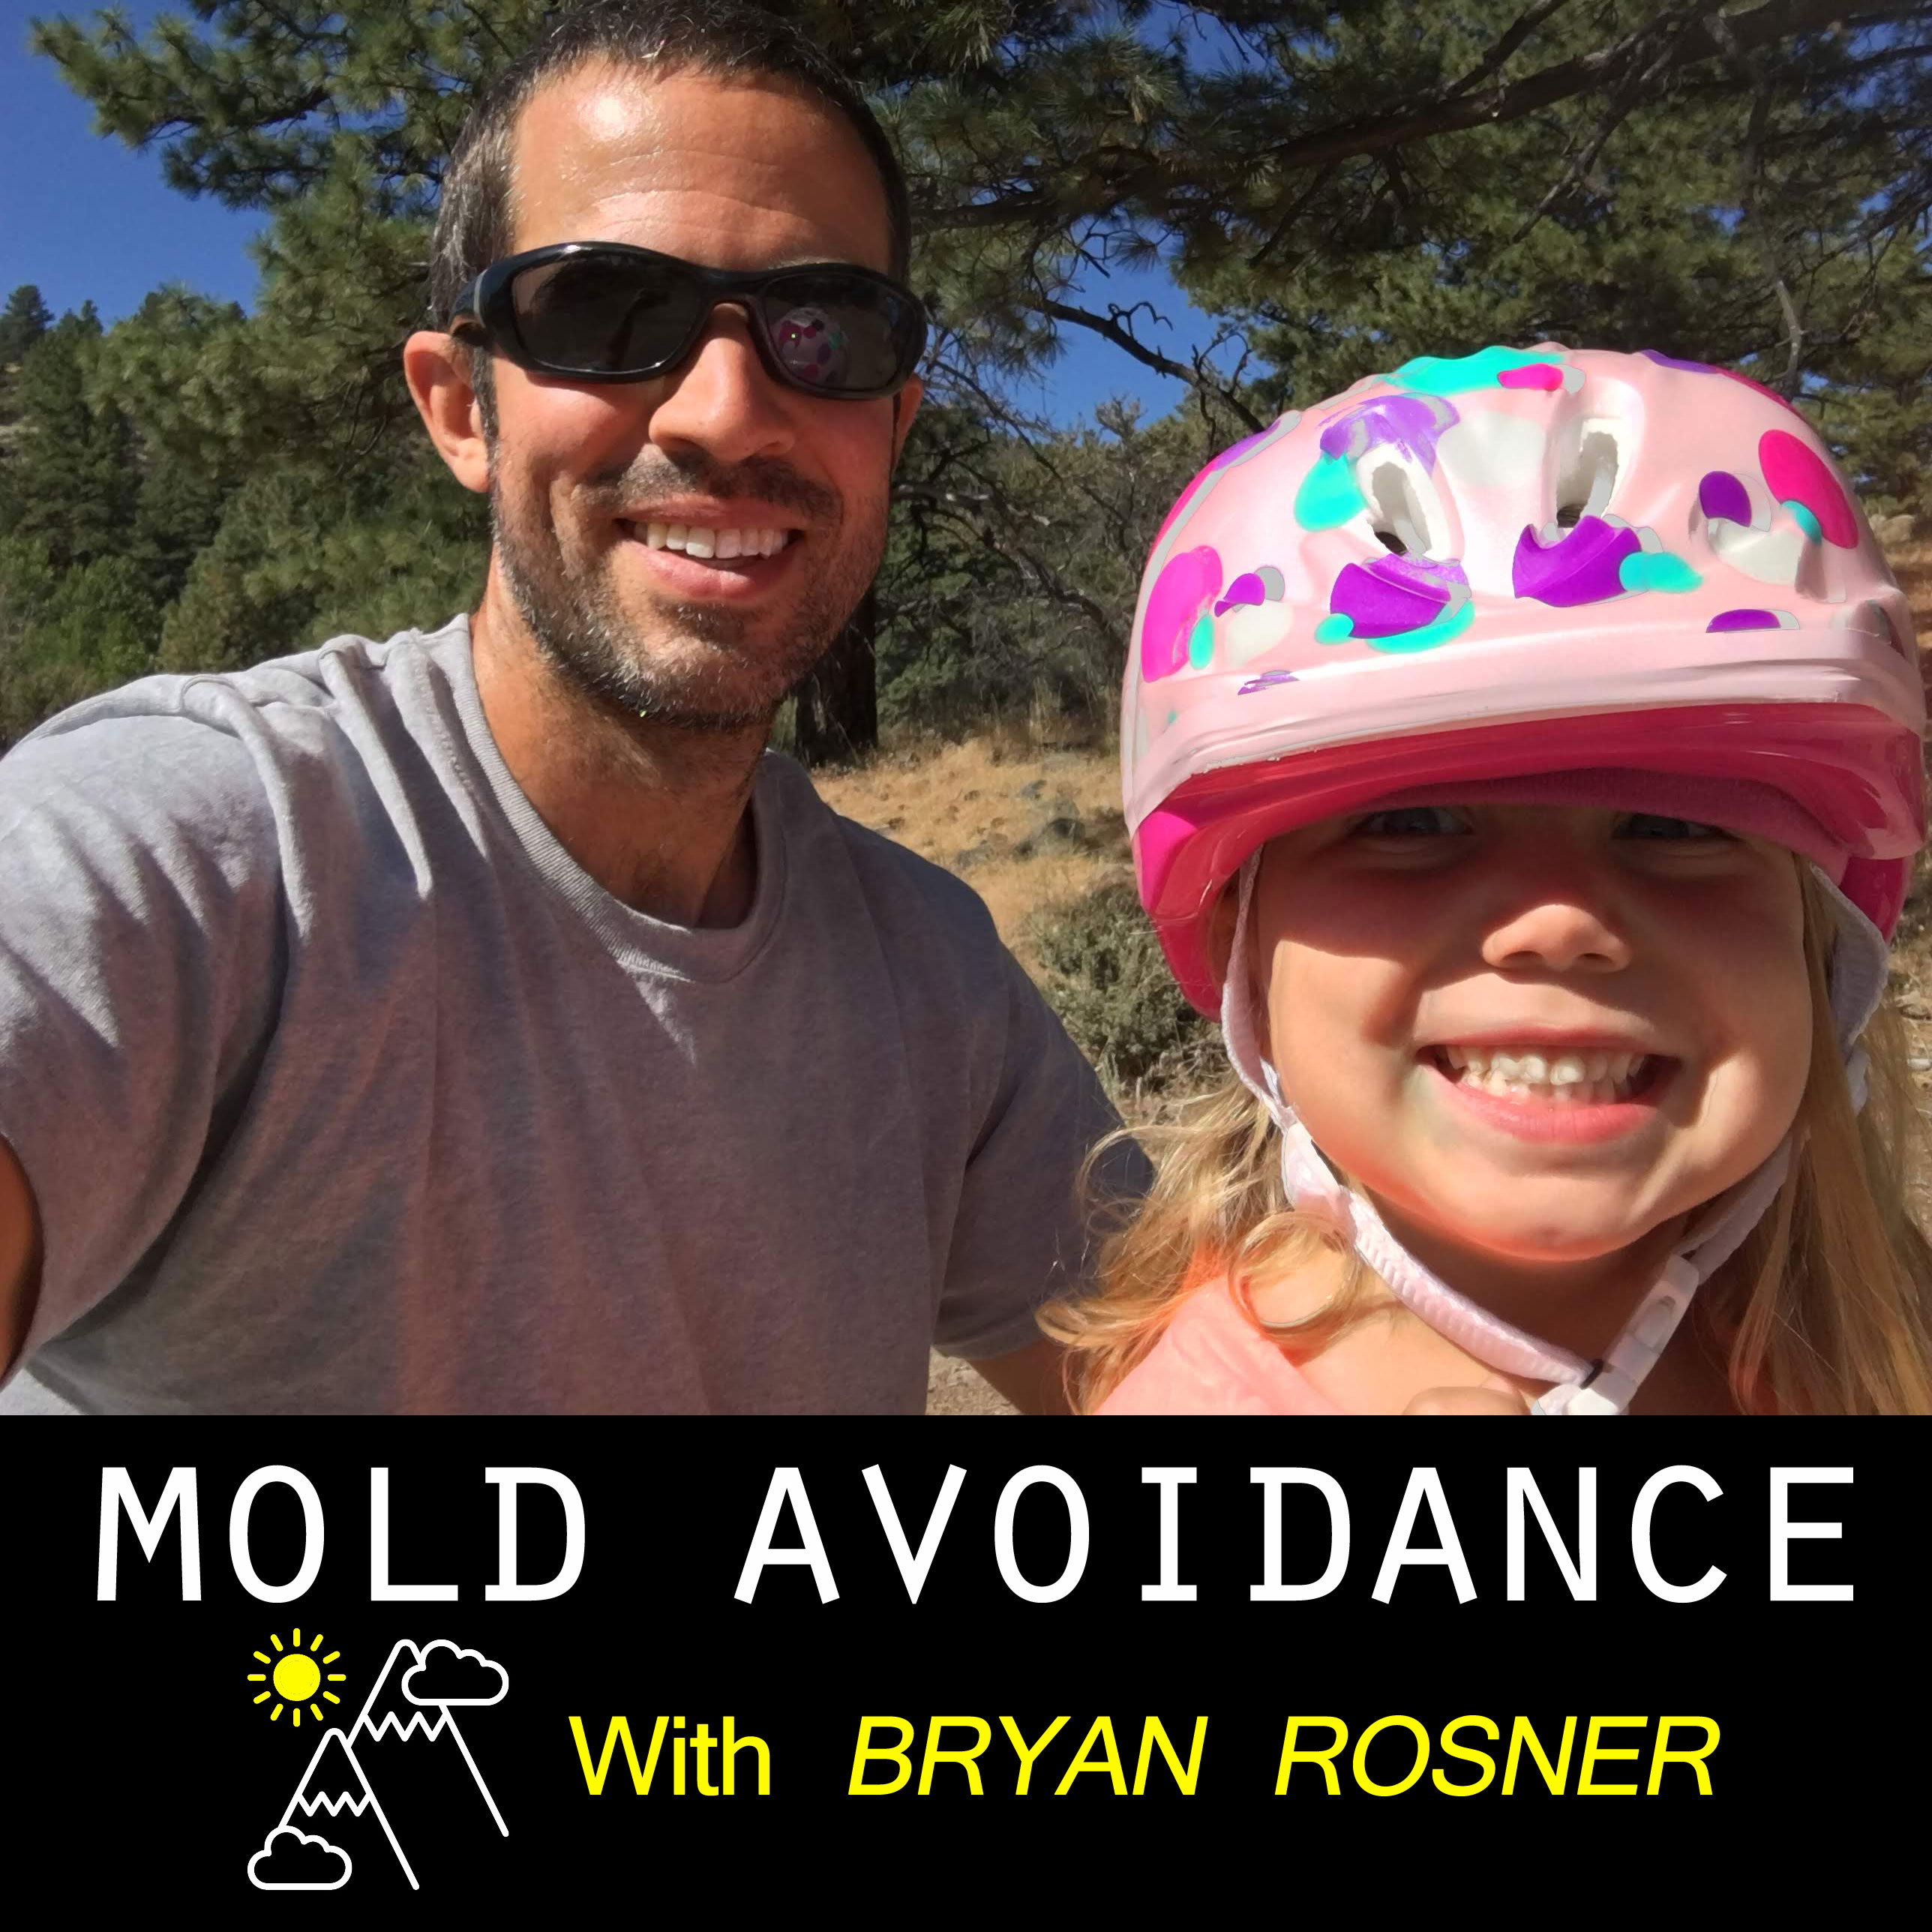 Mold Avoidance with Bryan Rosner